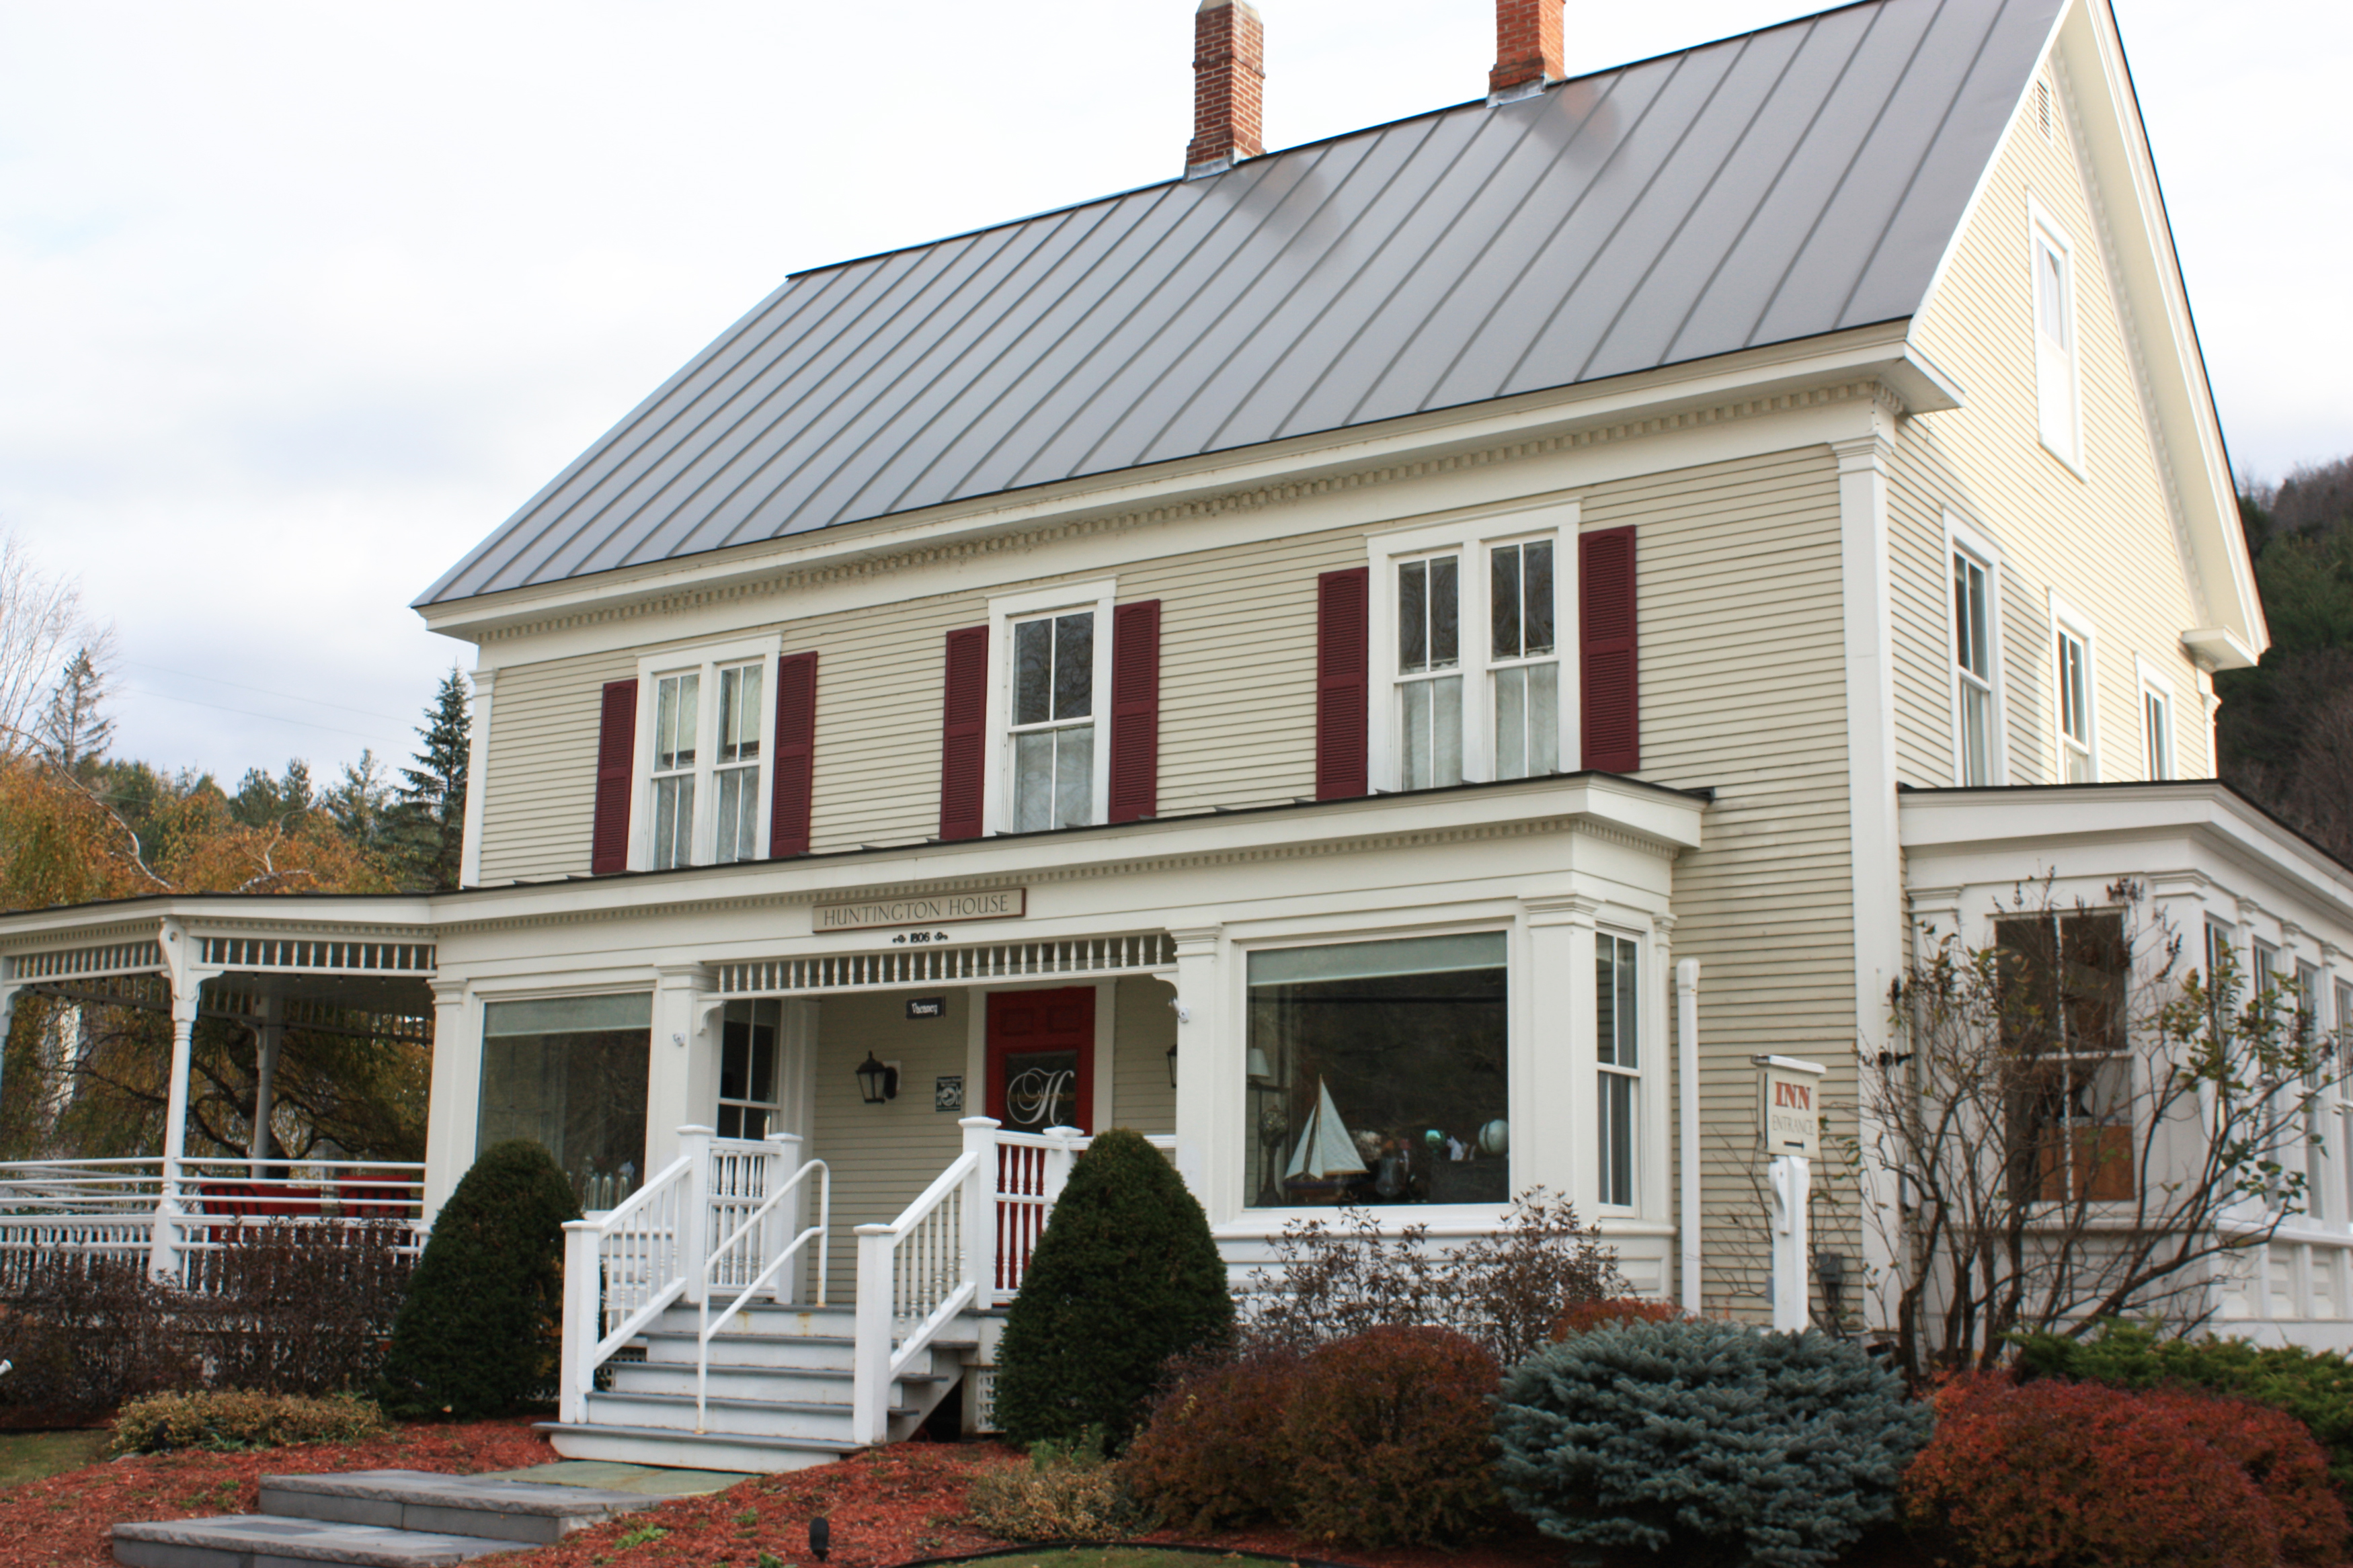 The Huntington House Rochester Vermont Travel Like A